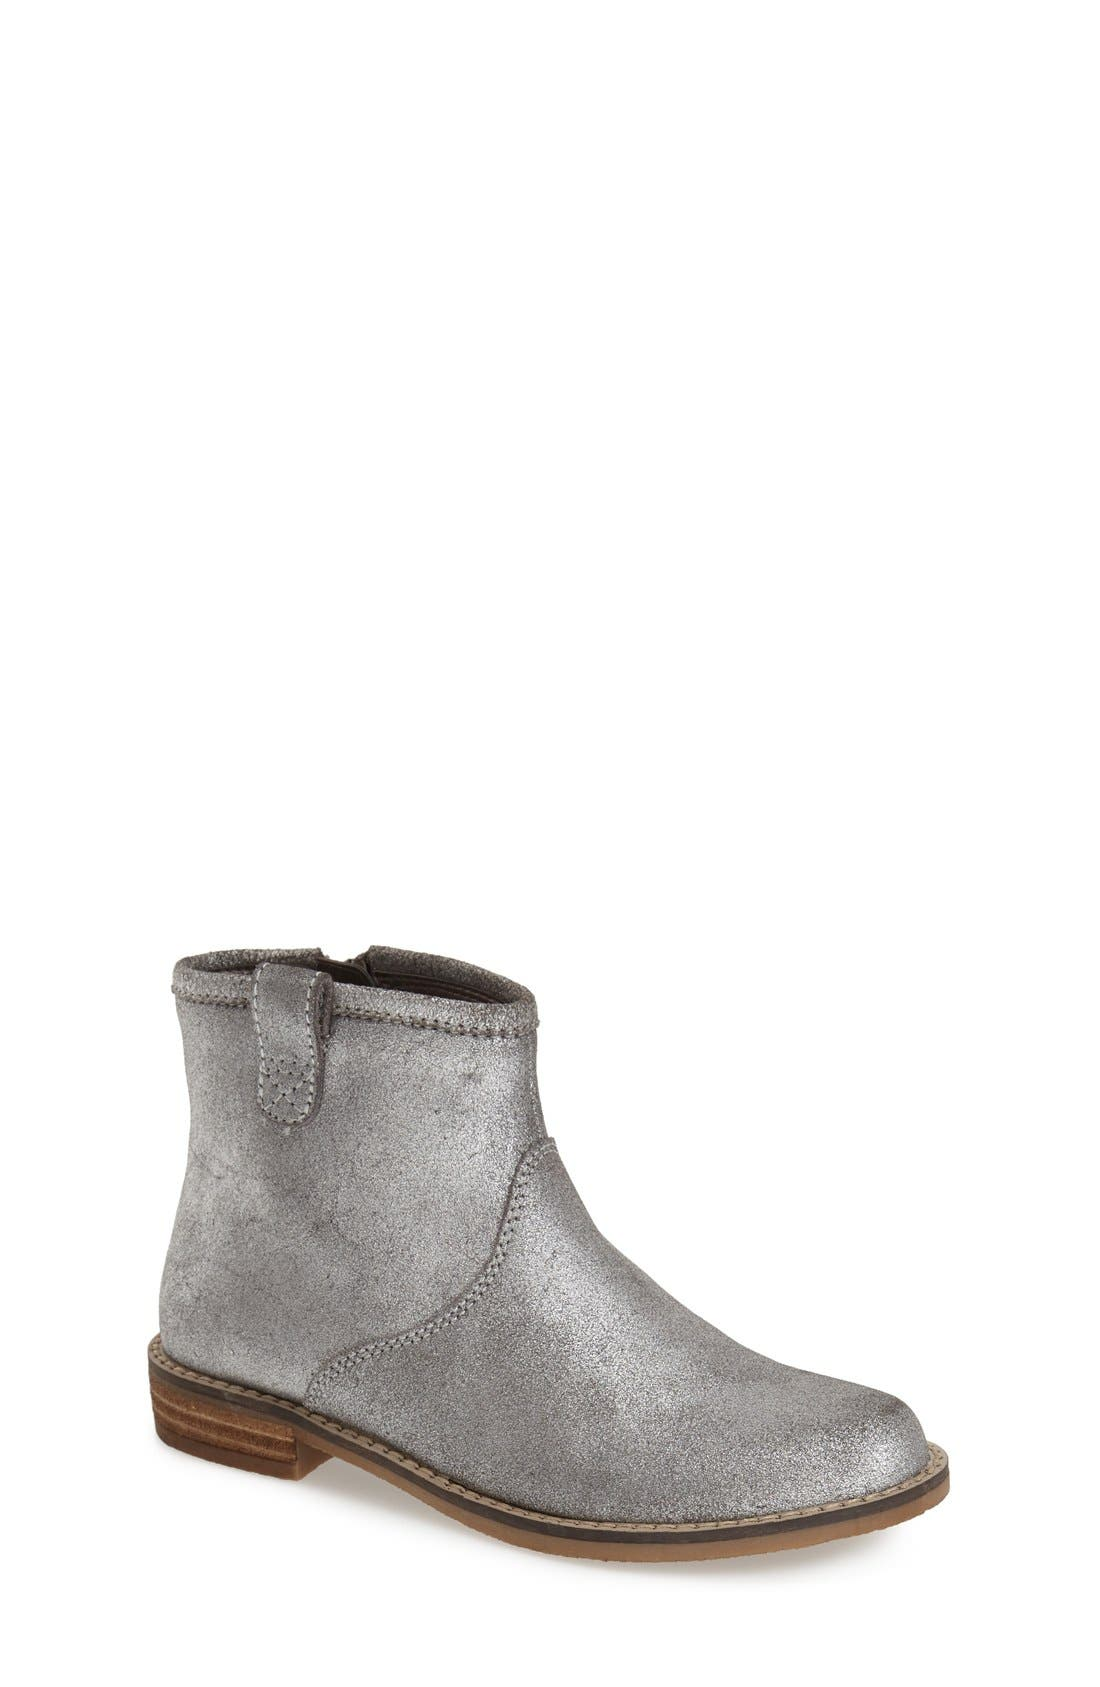 Peek 'Birch' Leather Ankle Boot, Main, color, 040